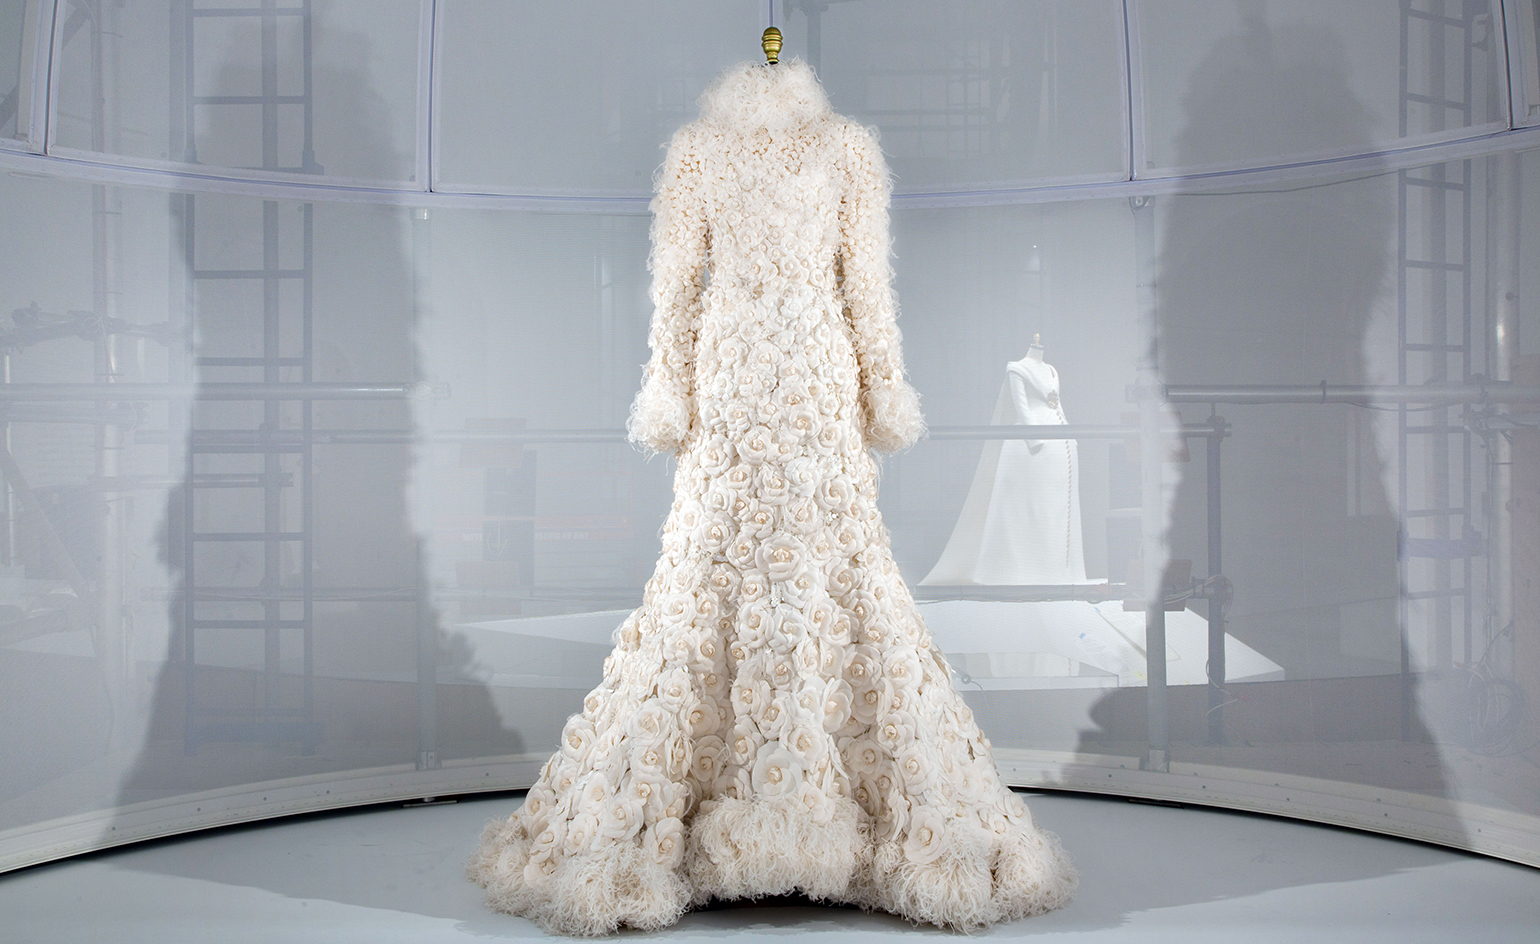 Met_Manus_Machina_Chanel_Haute_Couture_Fashion_Exhibition_New_York.jpg